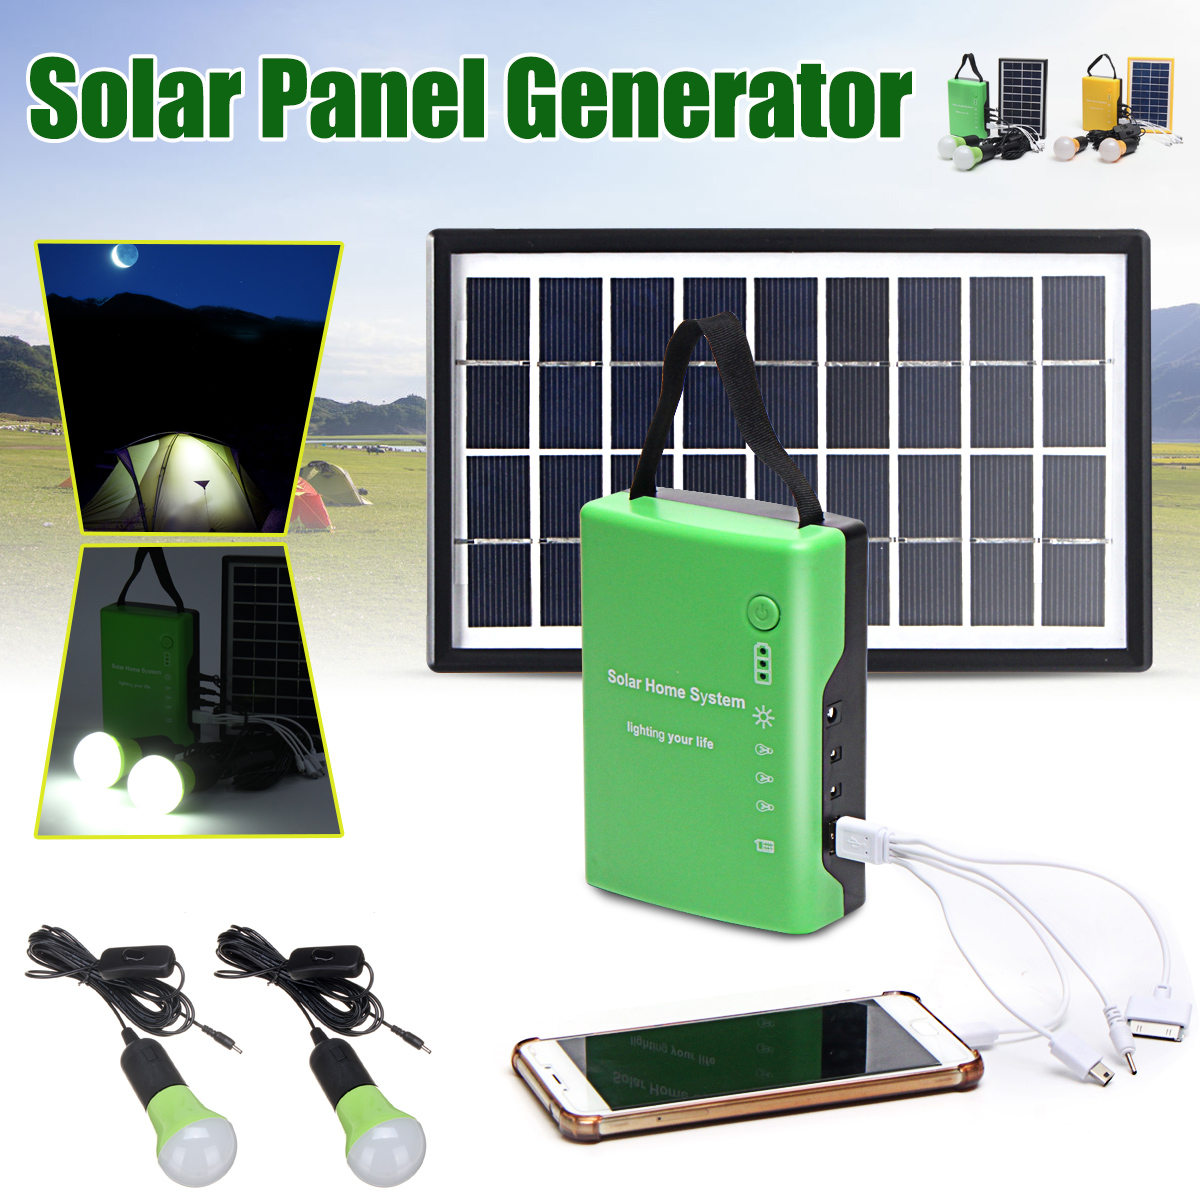 Portable Home Outdoor Solar Panel Power Generator USB Cable Charge Emergency LED Light System 4.5Ah / 6V batteries Energy LED